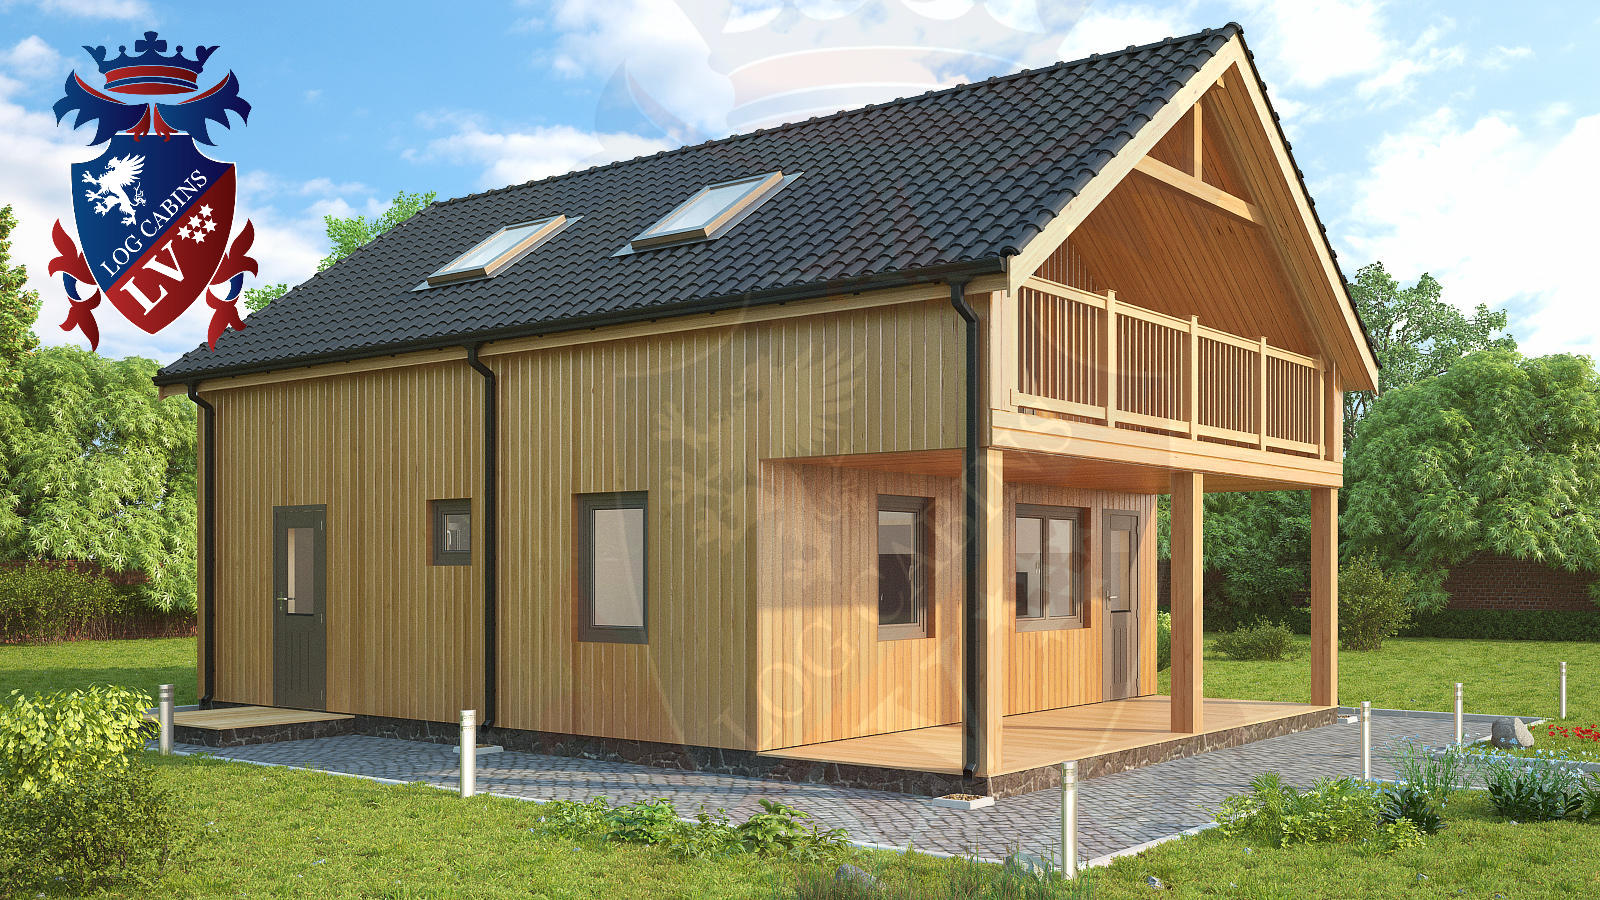 Log cabins lv blog log cabins log cabin cabin cabins for Two storey log cabins for sale